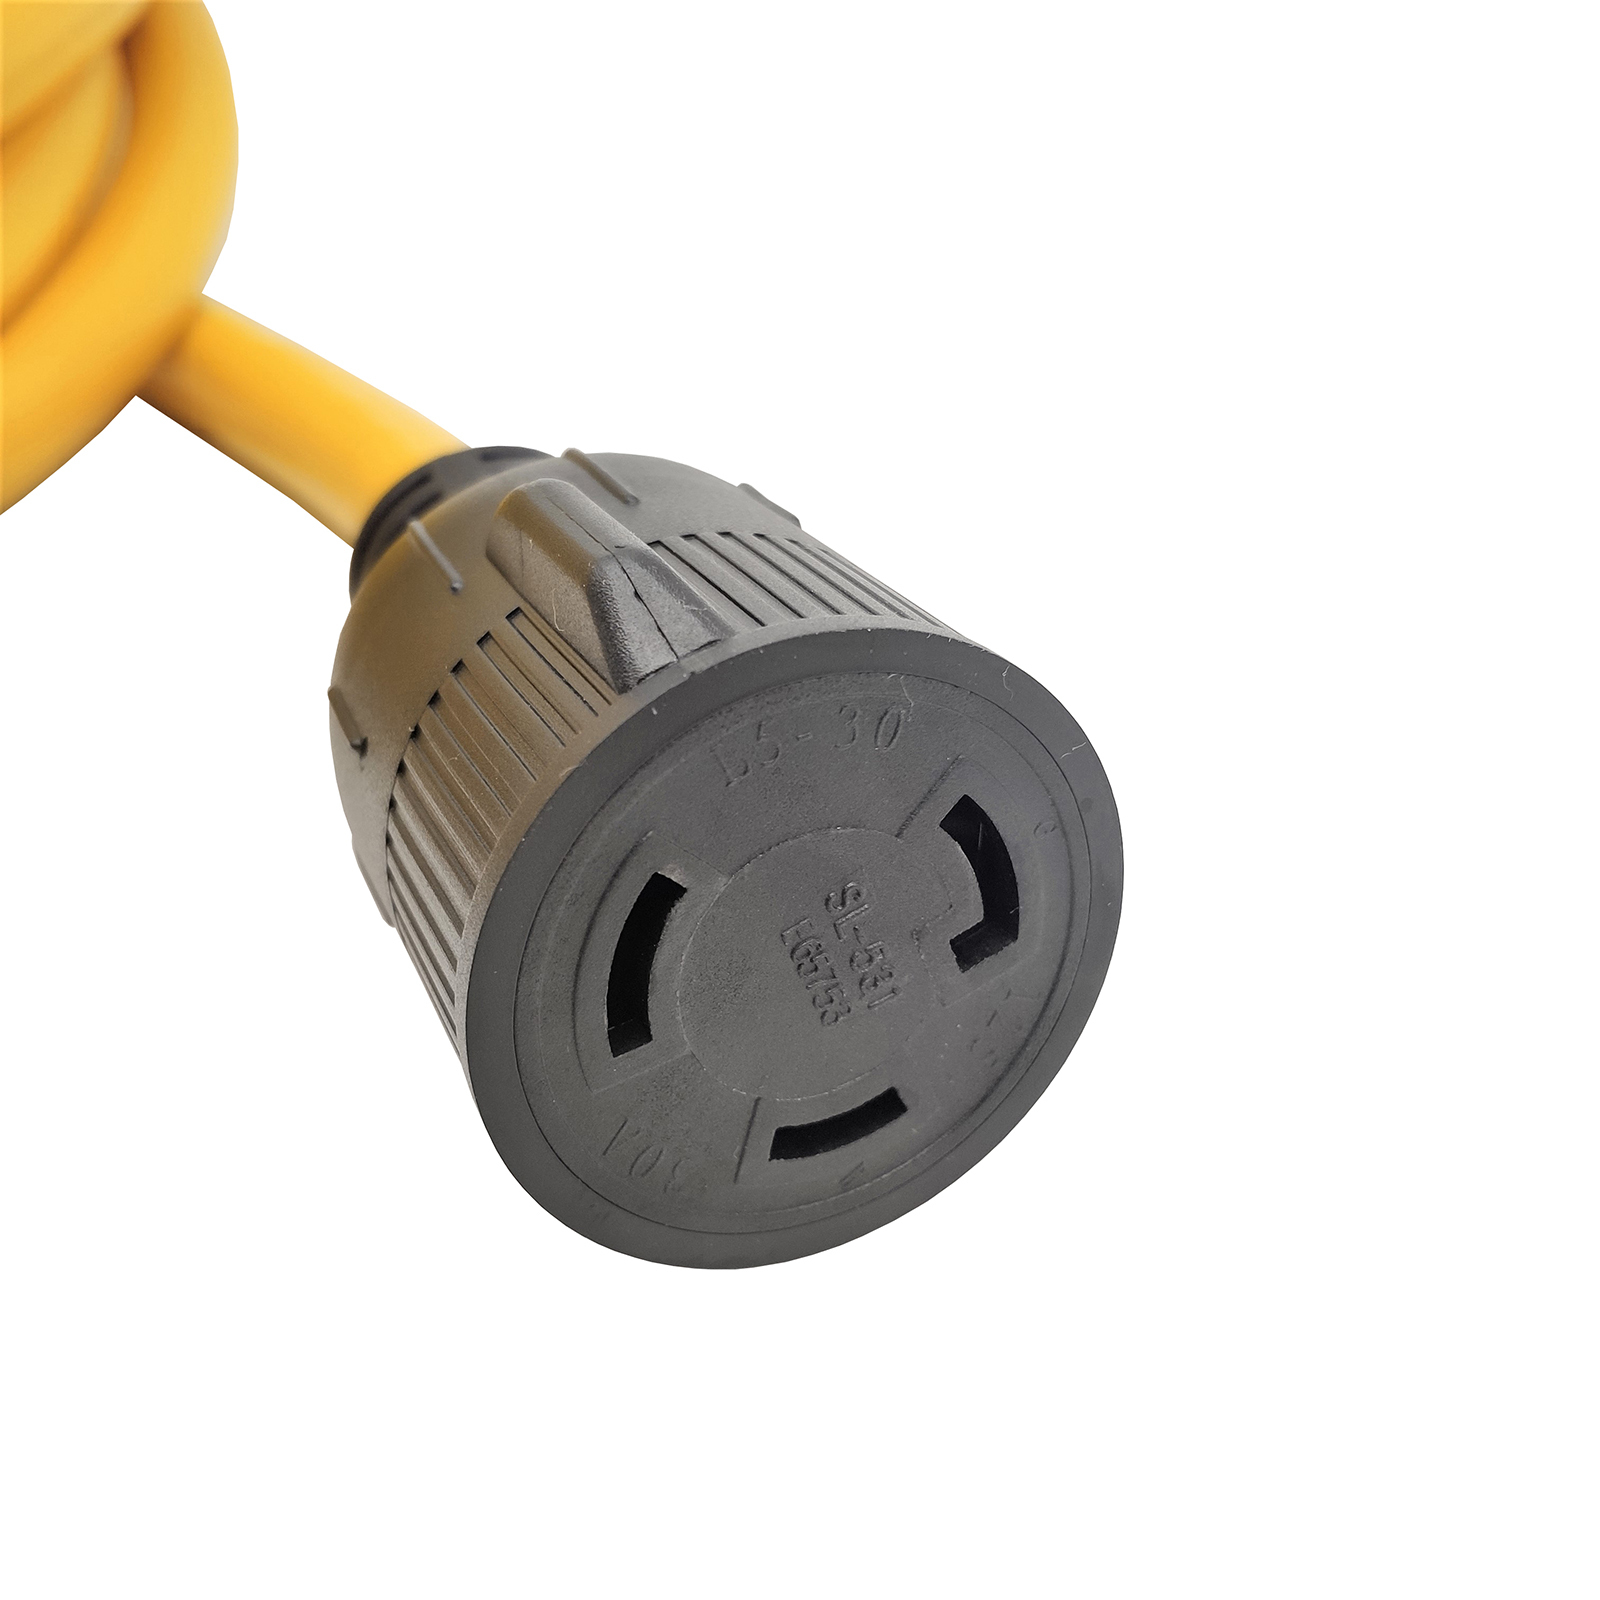 NEMA L5-30 Extension Cord 36 Feet